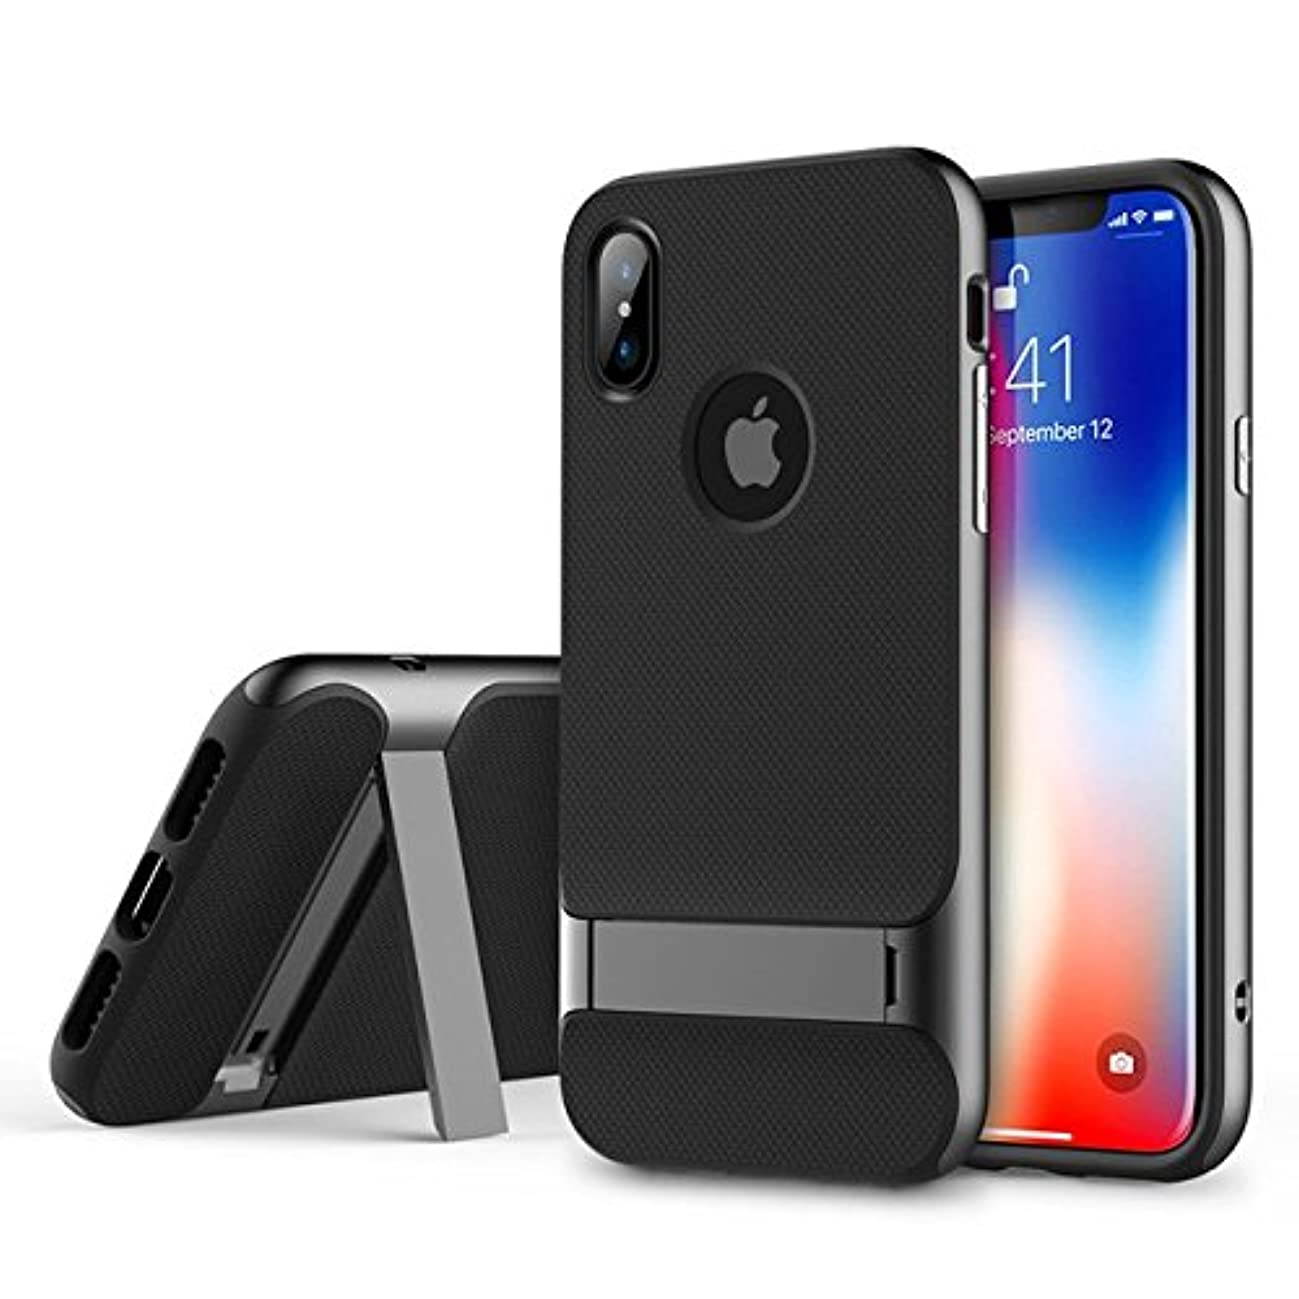 IPhone X/XS Case With Kickstand,EMEYGROUP Stand Shockproof Cover PC+TPU Premium Carbon Fiber Dual Layer Hybrid Shock Proof Ultra Thin Slim Fit Built-in Holder Protective Case For iPhone 10S 10 (grey)